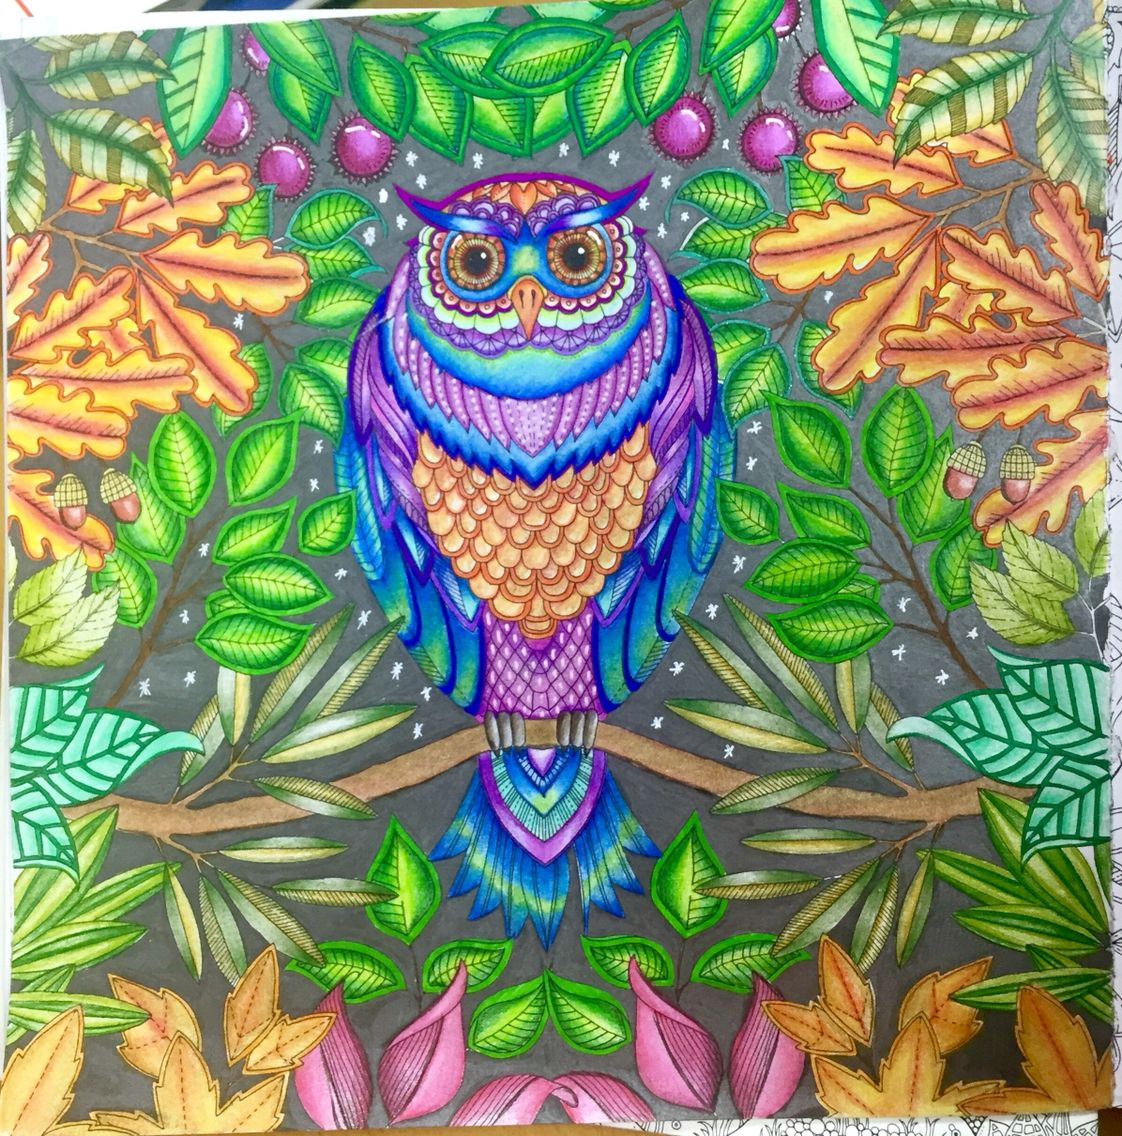 The Owl From Secret Garden By Johanna Basford Used Colored Pencils